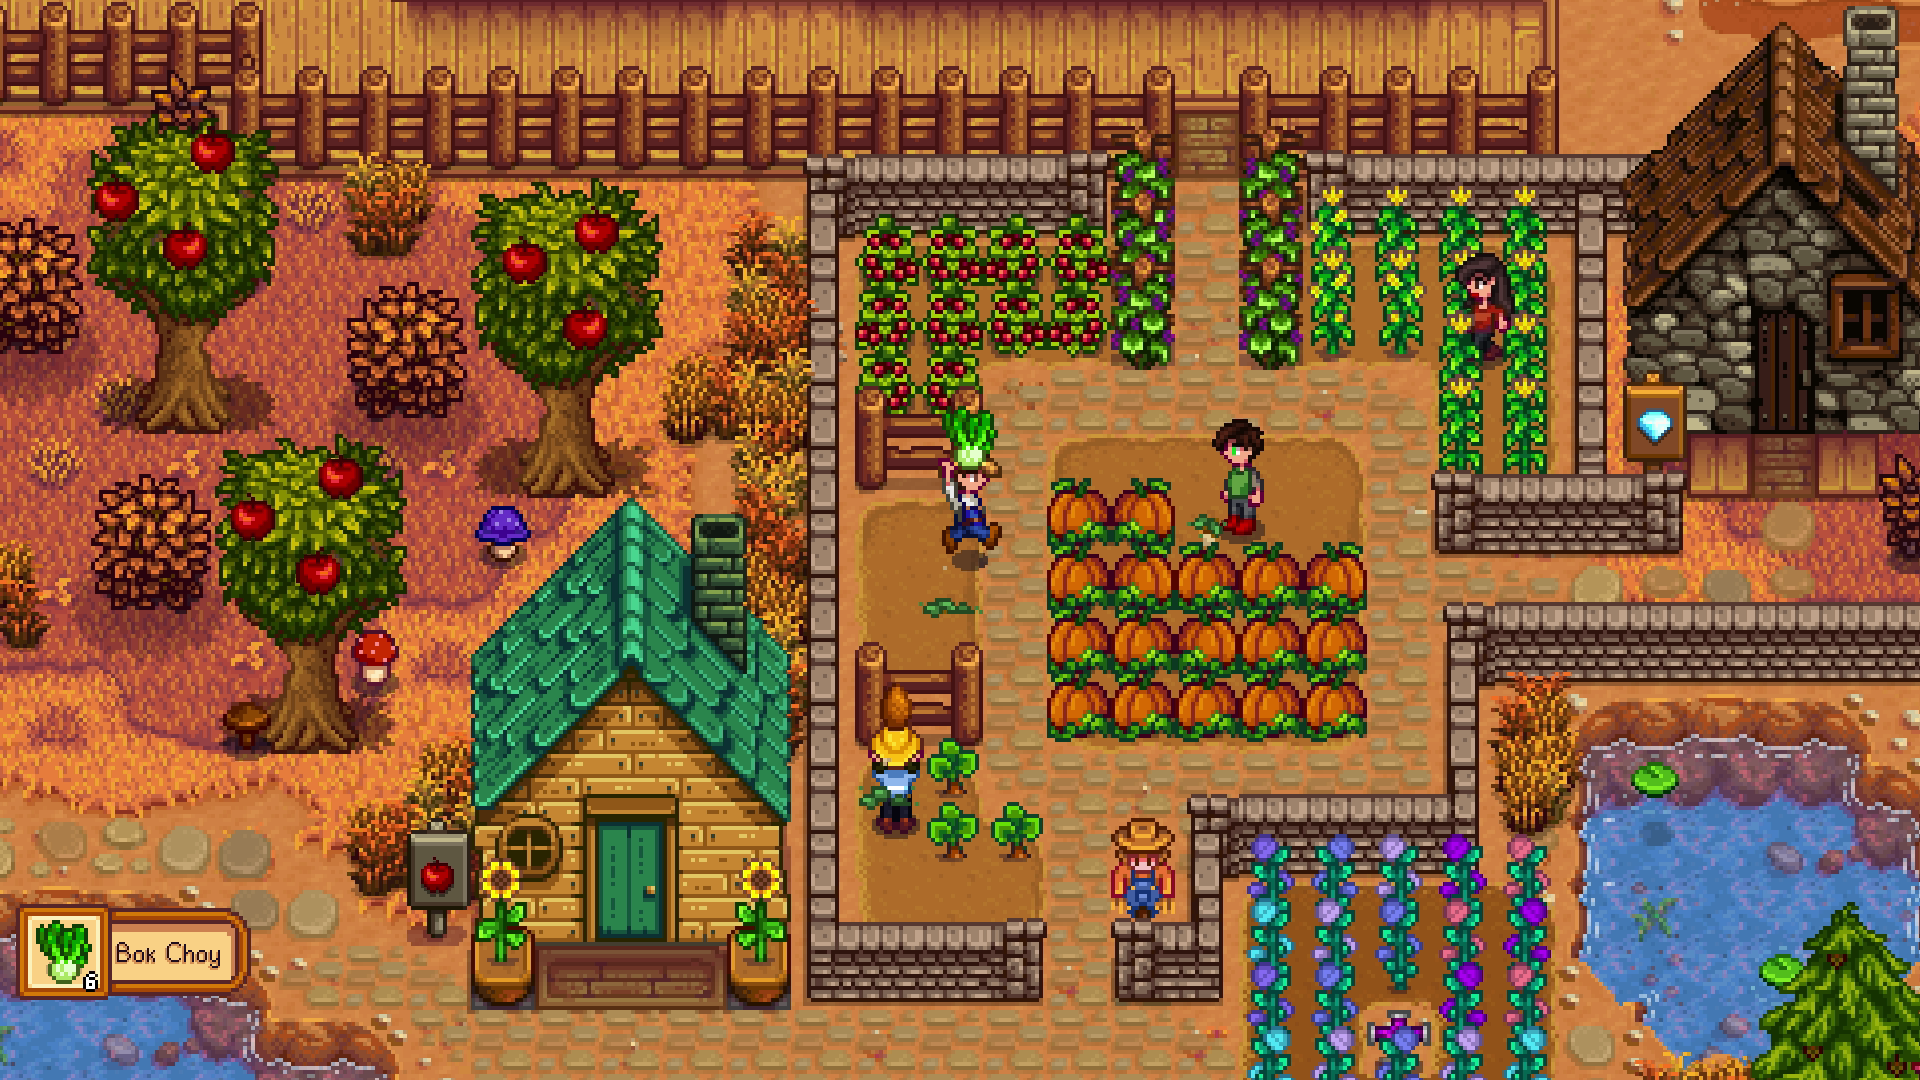 Aug 16, 2018 Stardew Valley mod lets you play multiplayer without